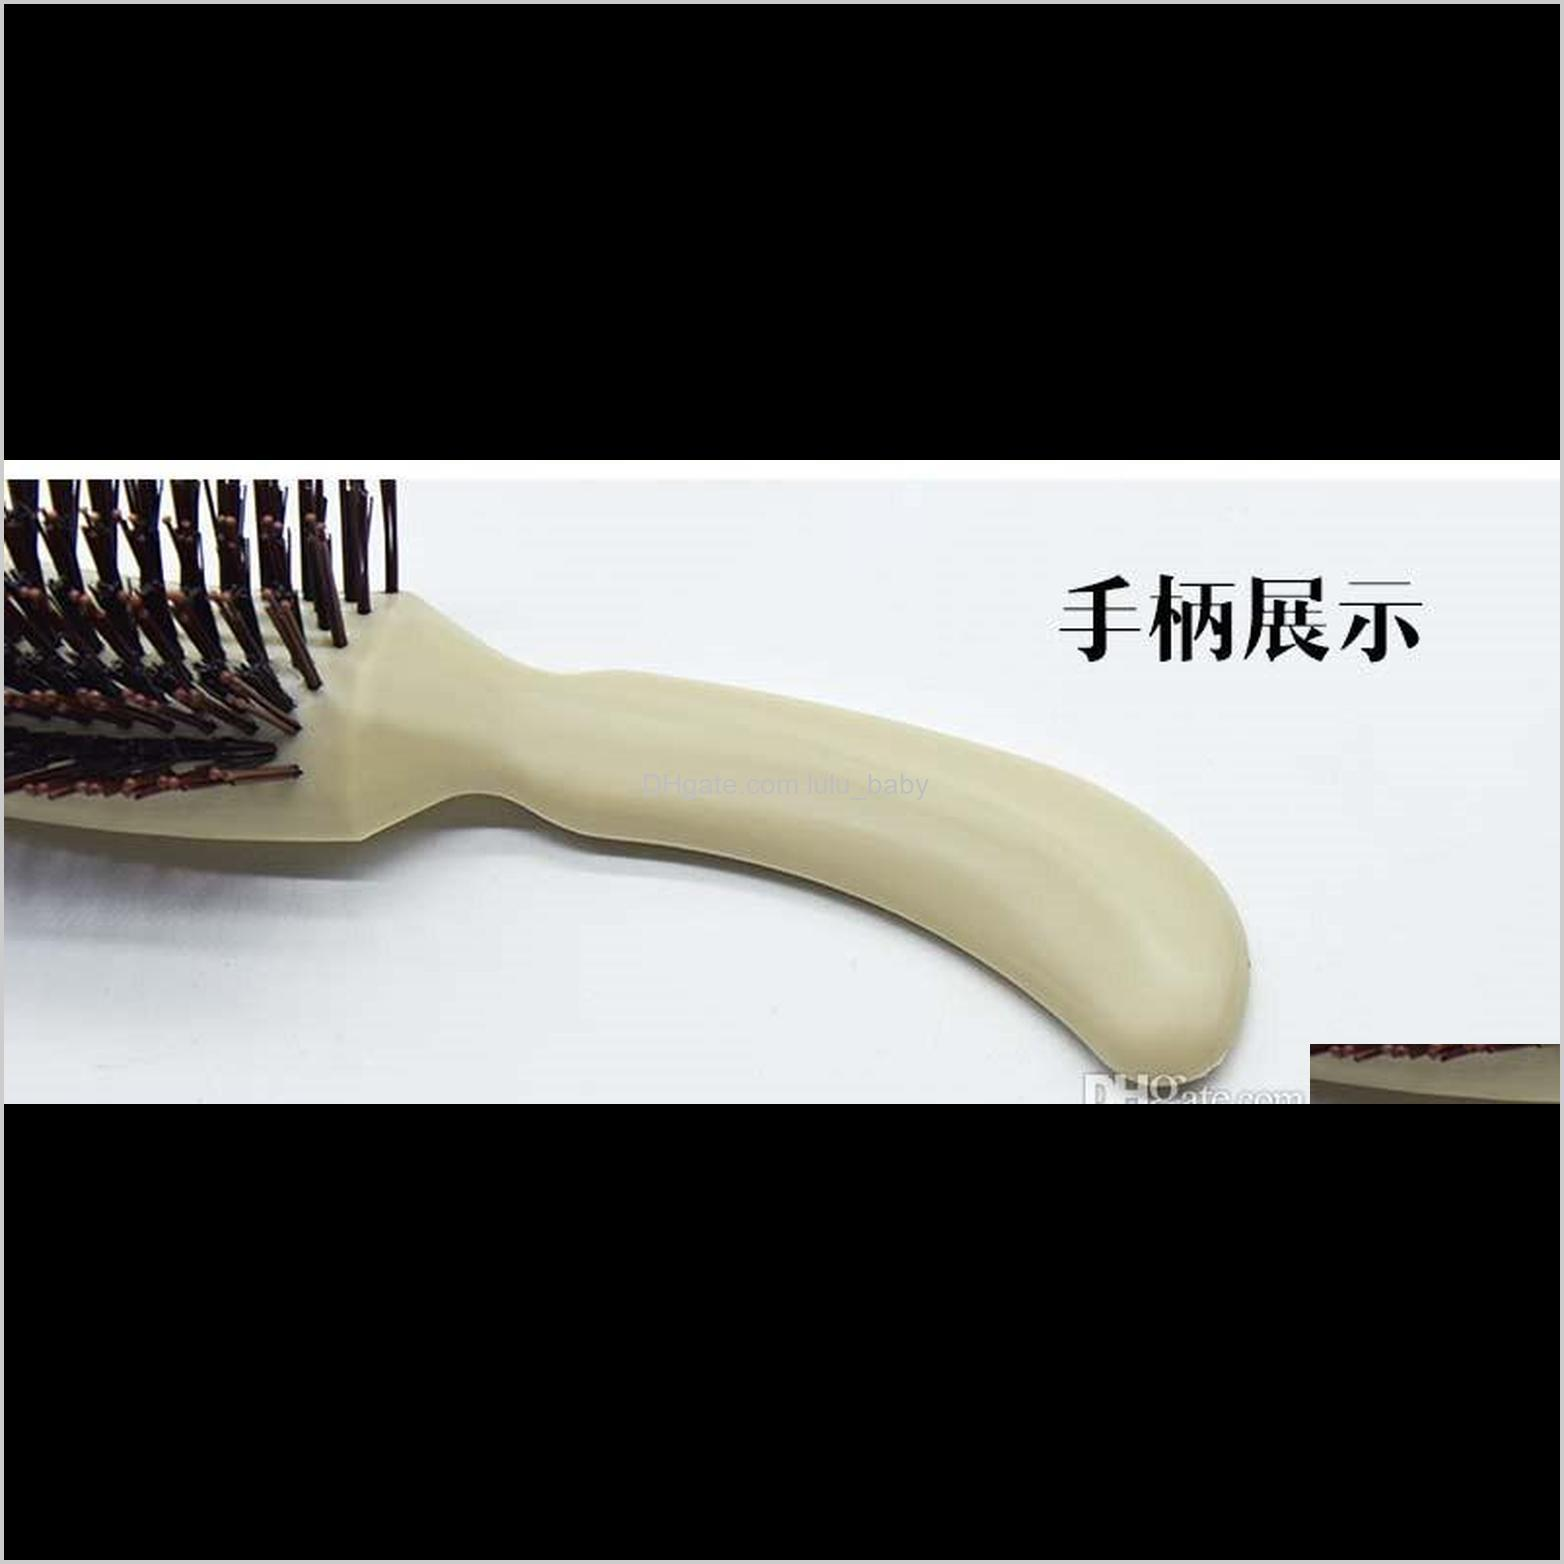 zhifan hair brushes for sale hair brush comb best s shape hairbrush sets for hairstyle makeup fluffy bulk